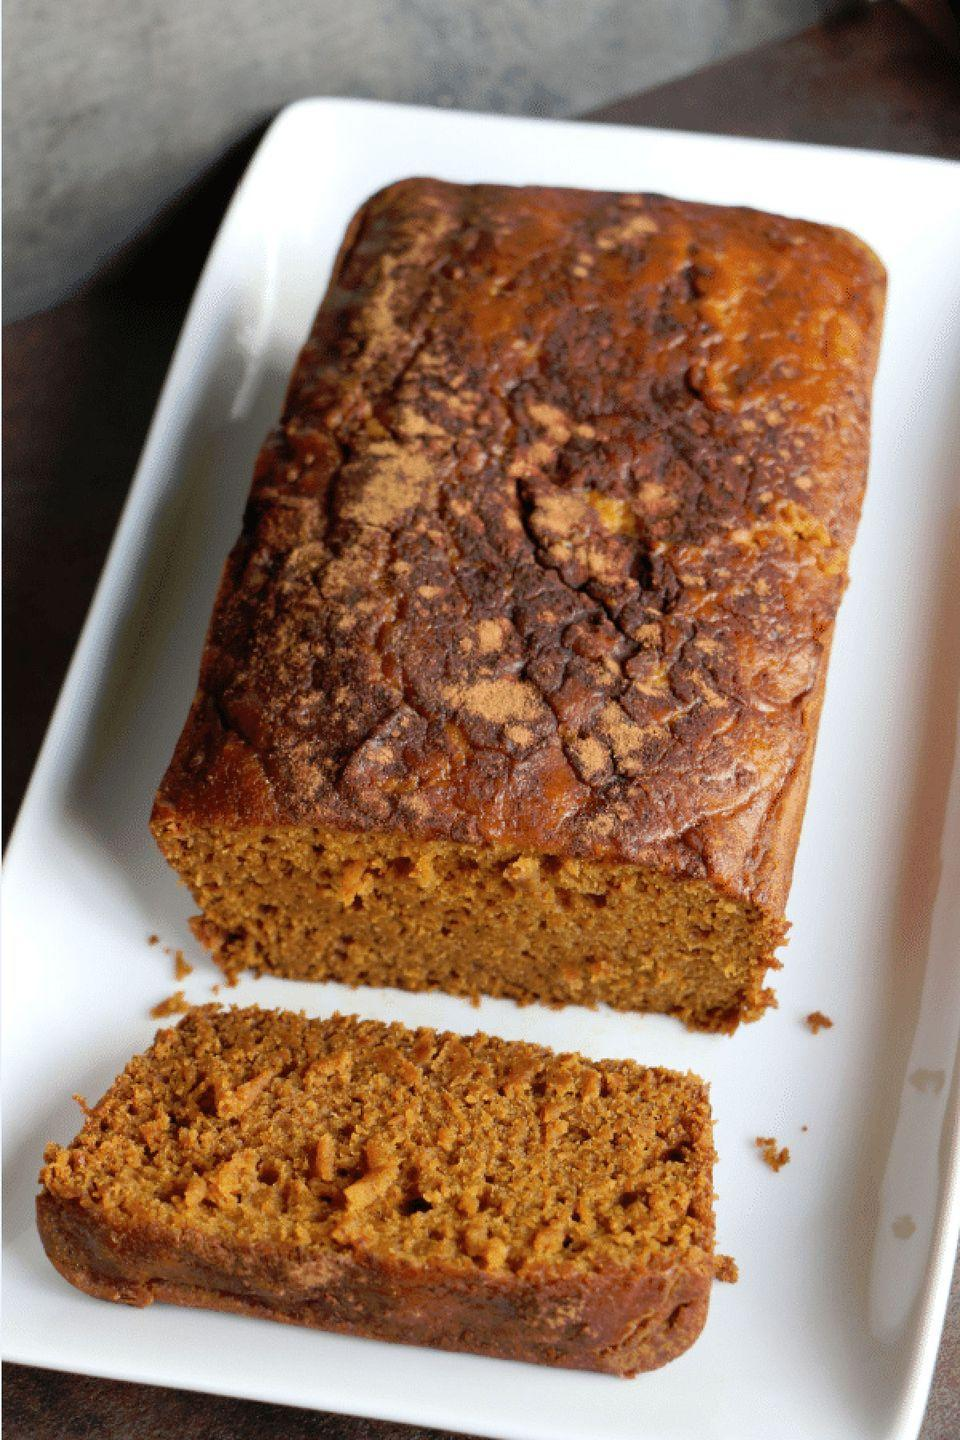 """<p>Throw your ingredients into your slow cooker, sit back, and wait for the magic to happen. </p><p><strong>Get the recipe at <a href=""""http://www.tammileetips.com/2014/04/crock-pot-pumpkin-bread-recipe/"""" rel=""""nofollow noopener"""" target=""""_blank"""" data-ylk=""""slk:Tammilee Tips"""" class=""""link rapid-noclick-resp"""">Tammilee Tips</a>. </strong></p>"""